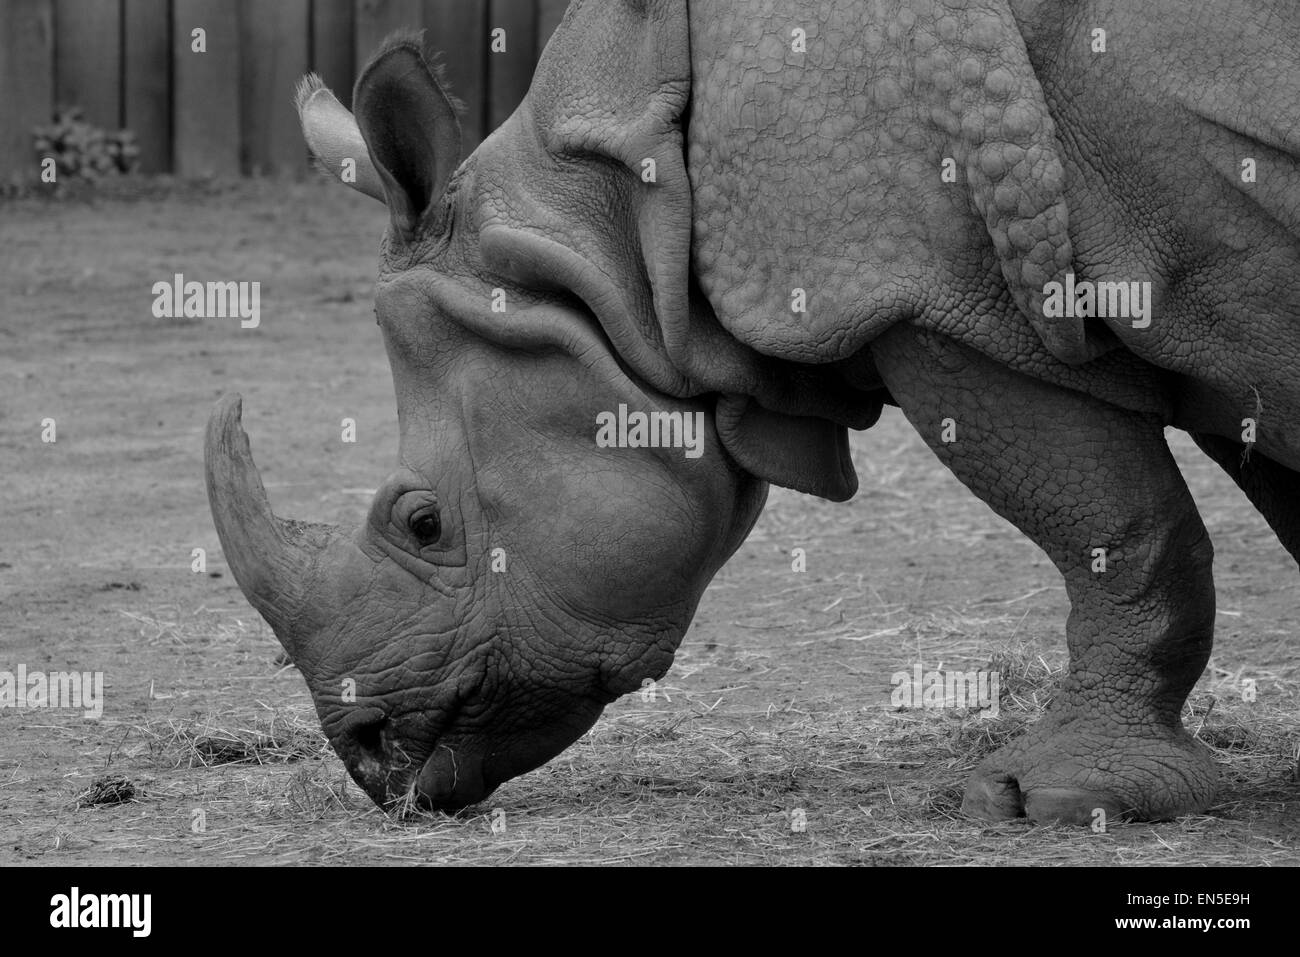 Black and white photo of a rhino - Stock Image